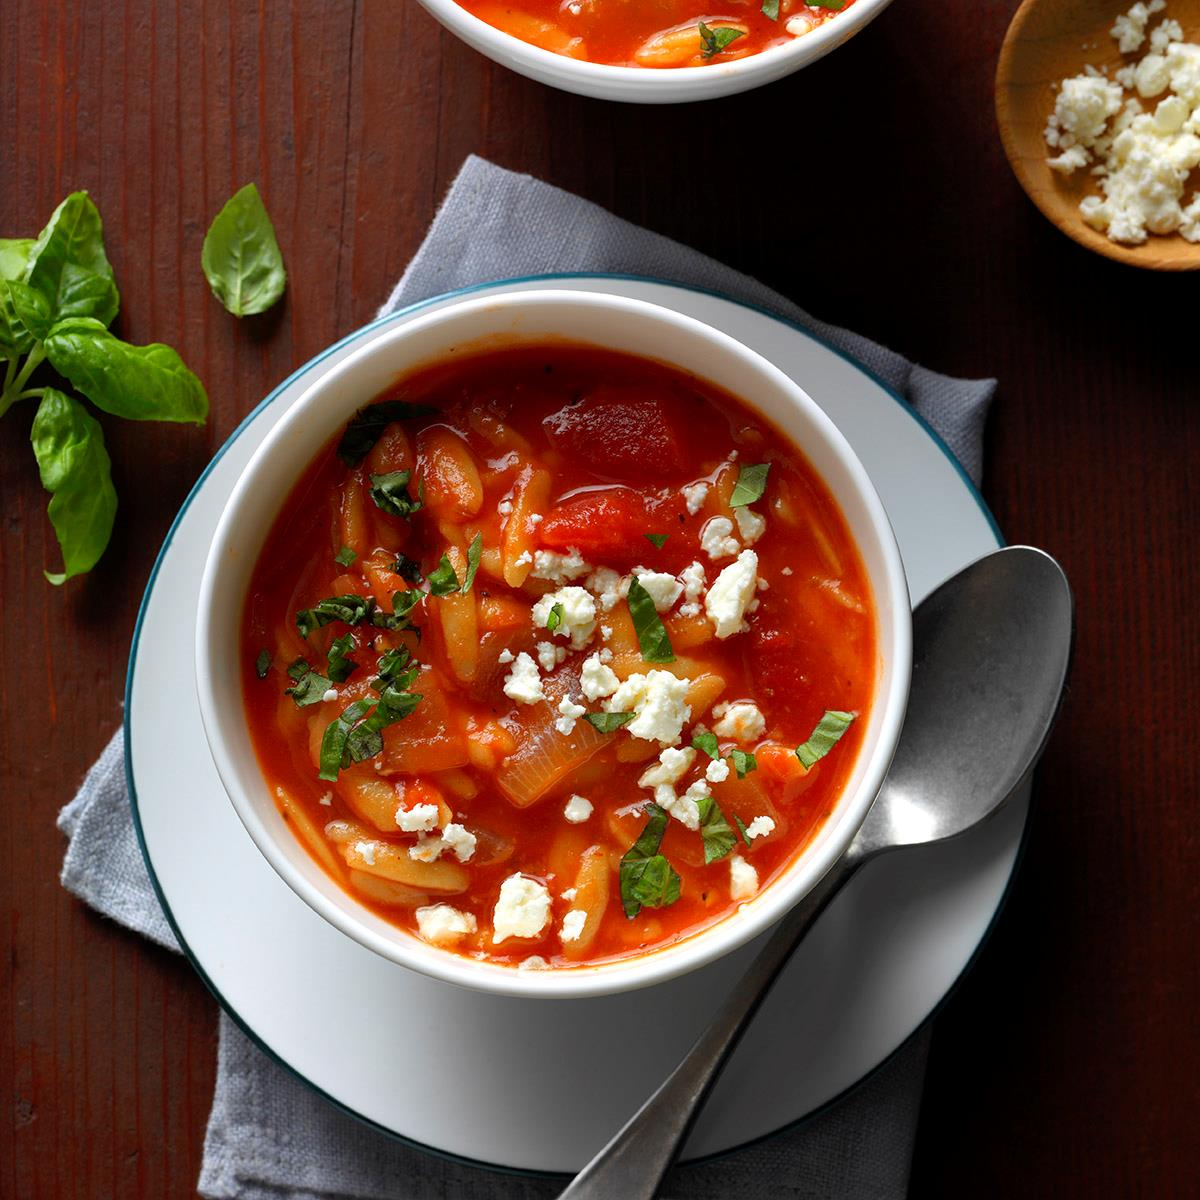 What Does Rms Mean >> Greek Tomato Soup with Orzo Recipe | Taste of Home